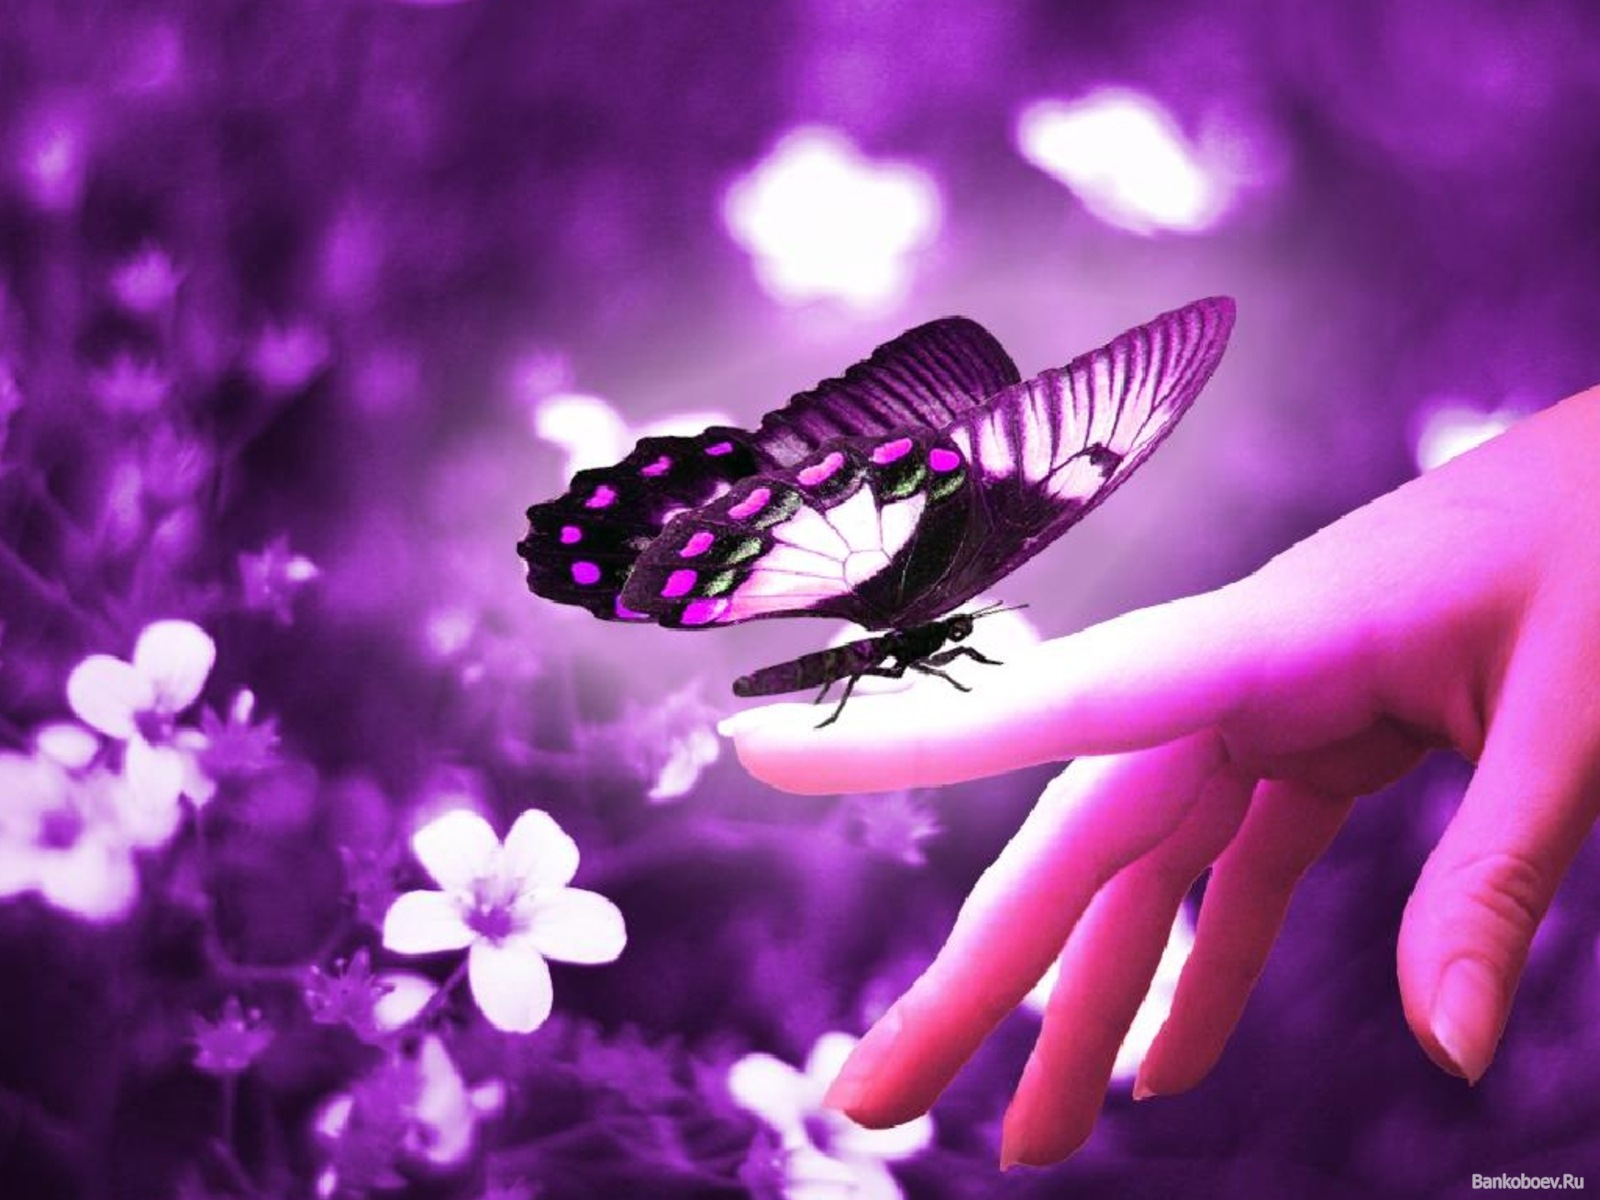 Cute Butterfly in Purple   Computer Screen Saver PC Desktop Wallpaper 1600x1200